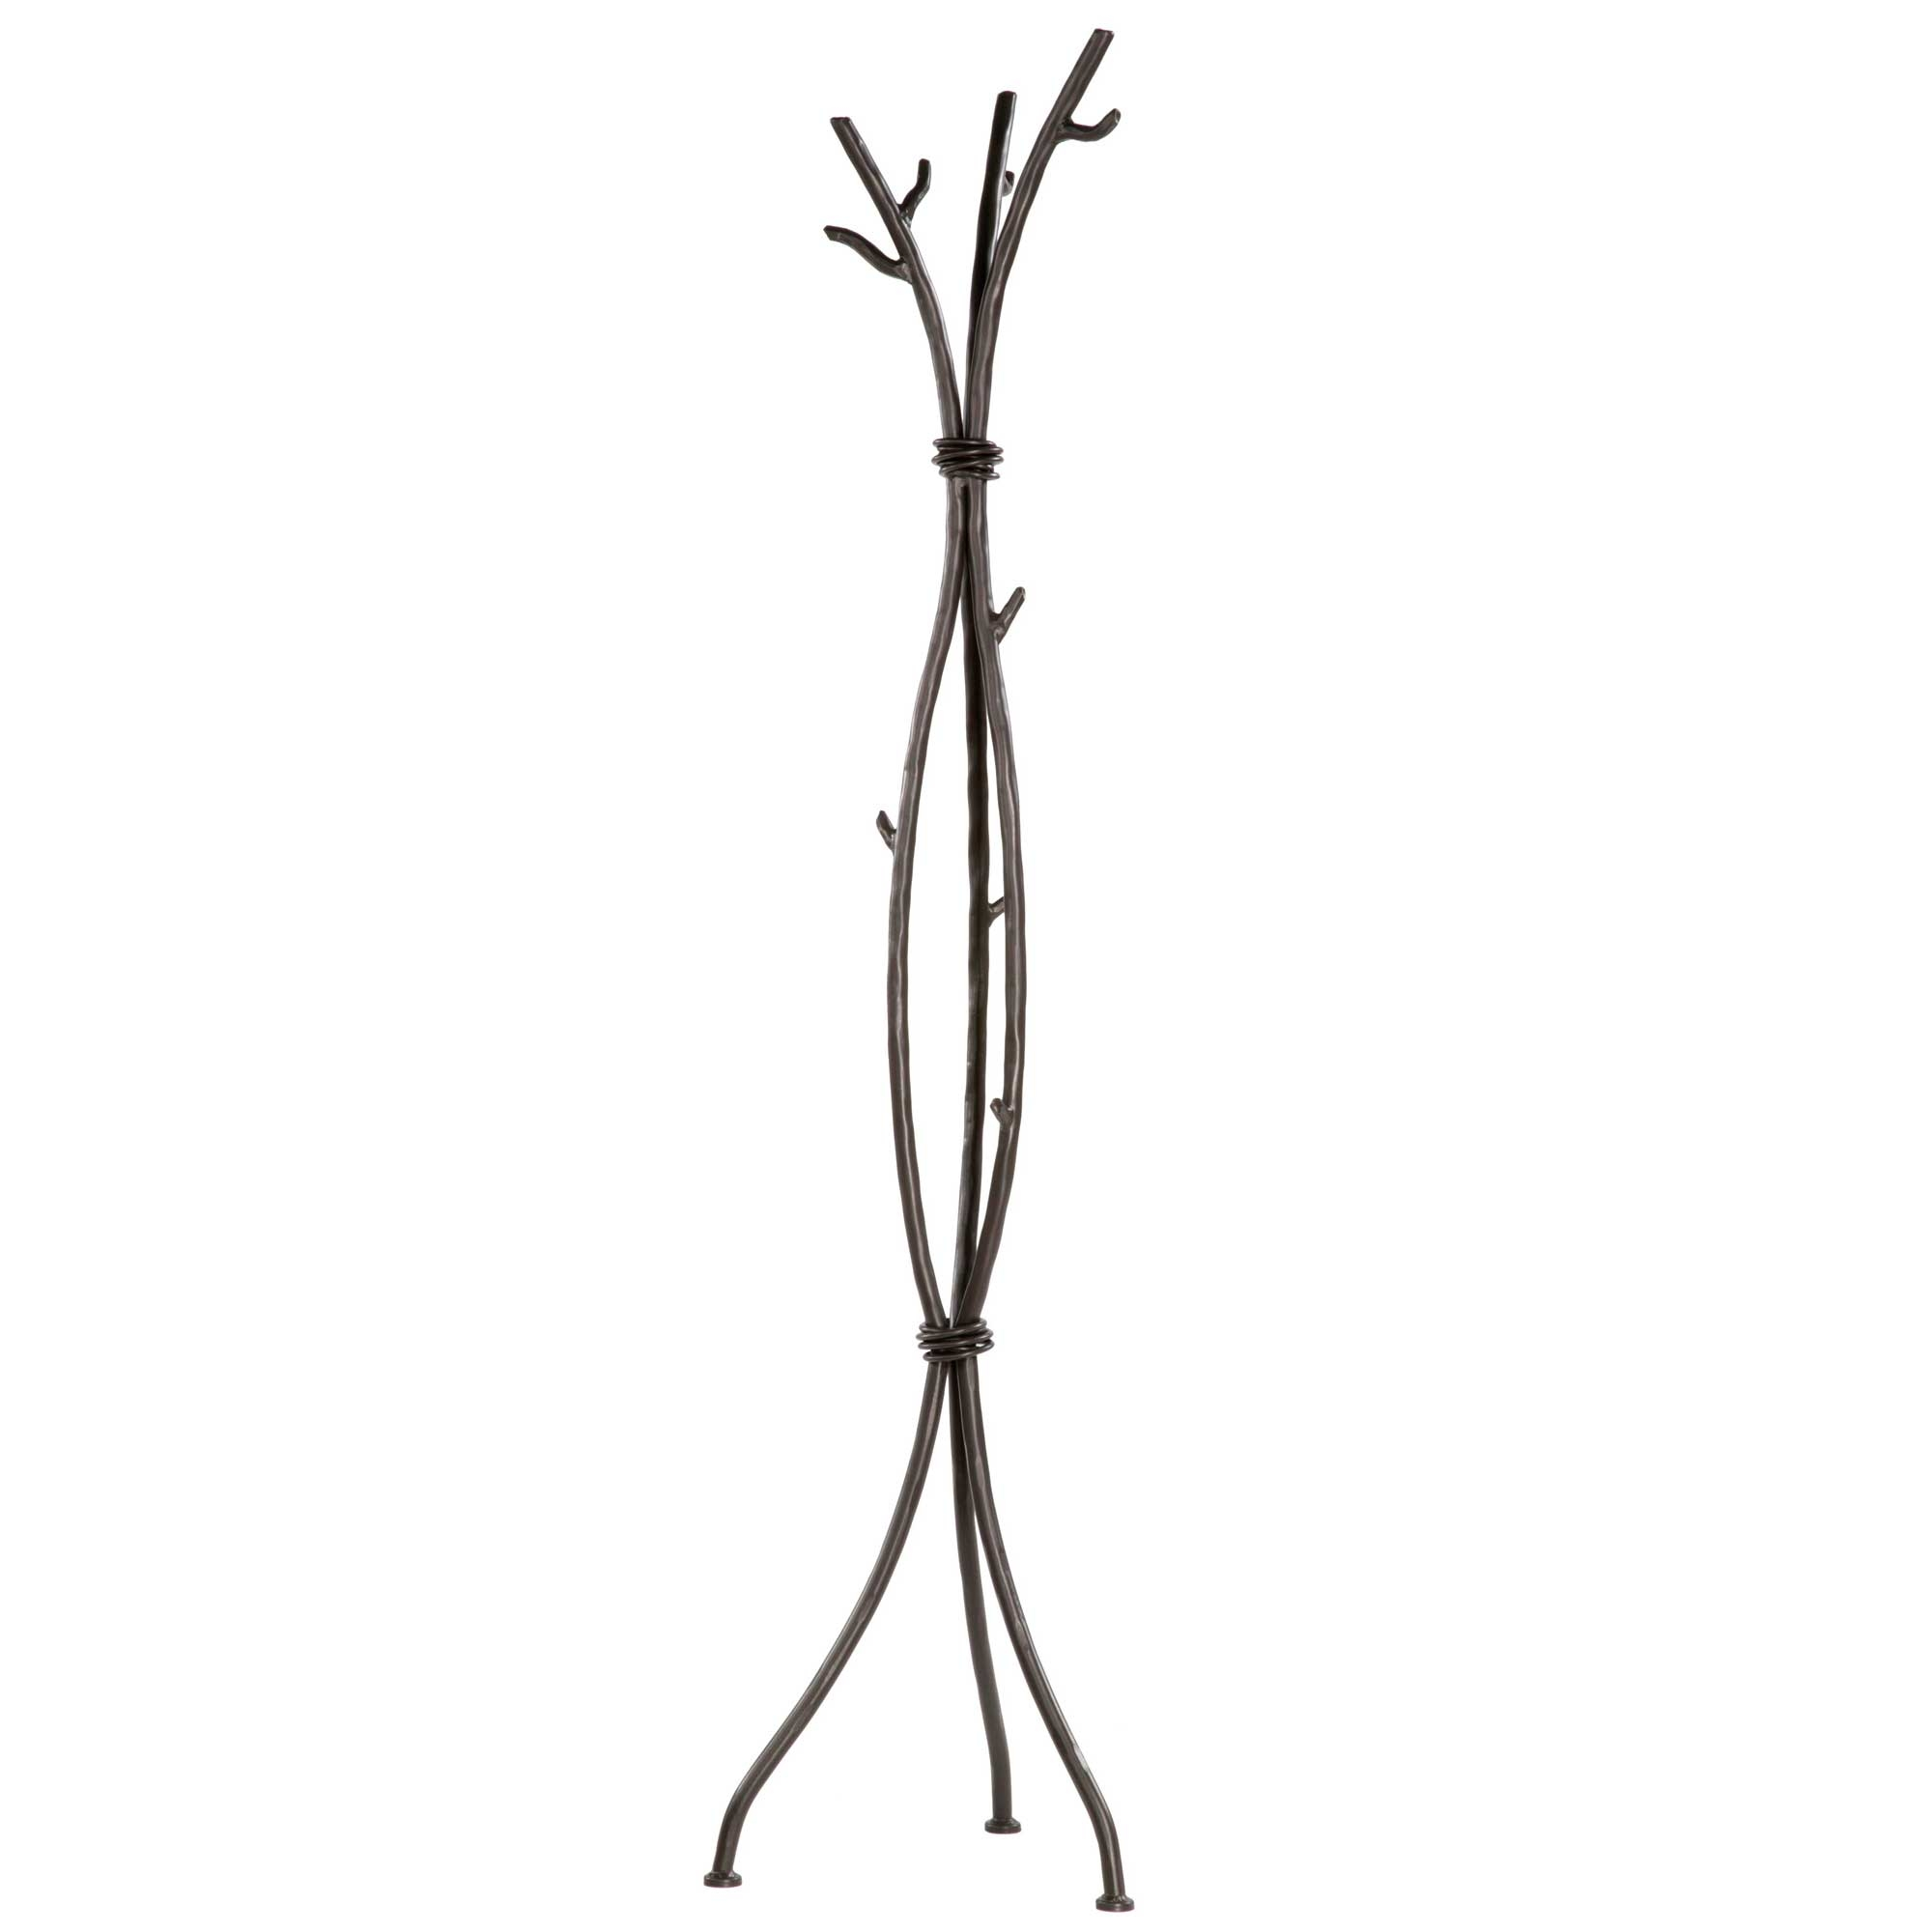 Wrought Iron Sassafras Standing Coat Rack in branch design